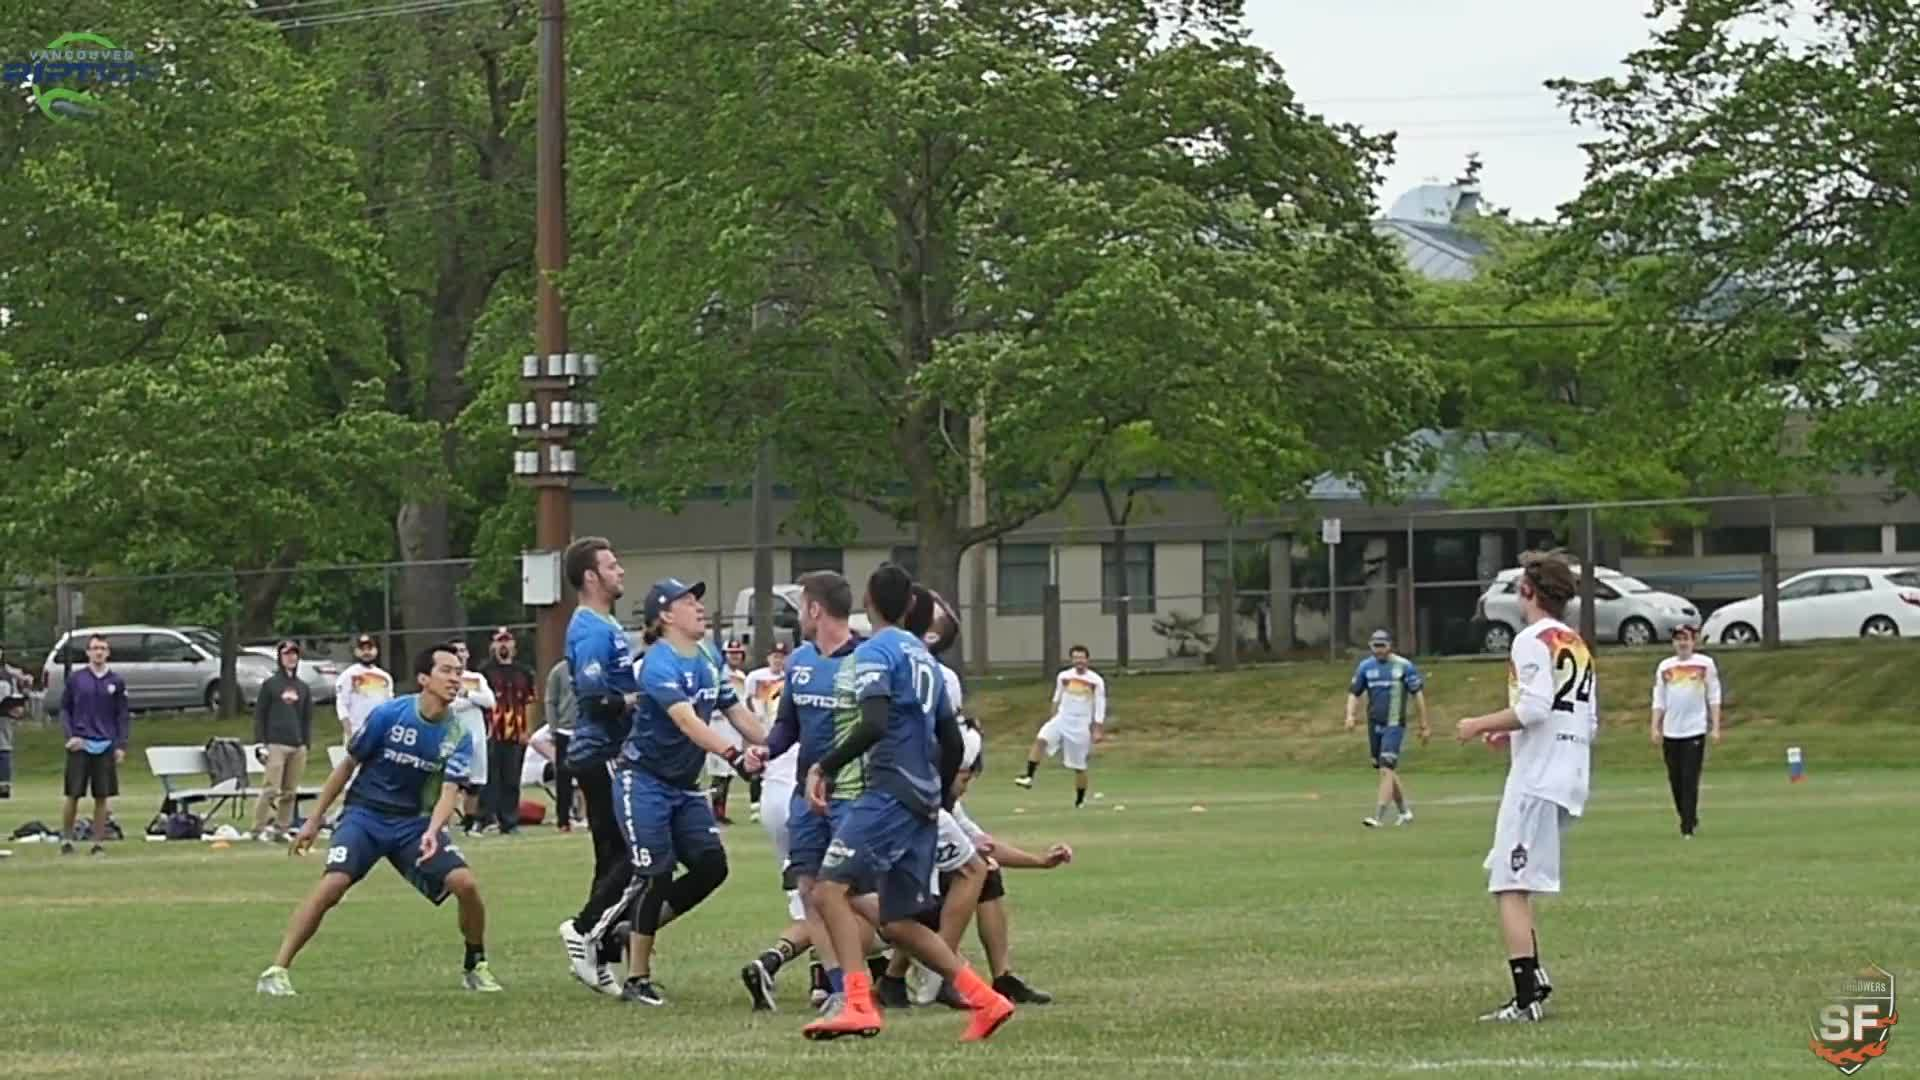 audl, ultimate, vancouver riptide, San Francisco Flame Throwers @ Vancouver Riptide: Week 7 Highlights GIFs